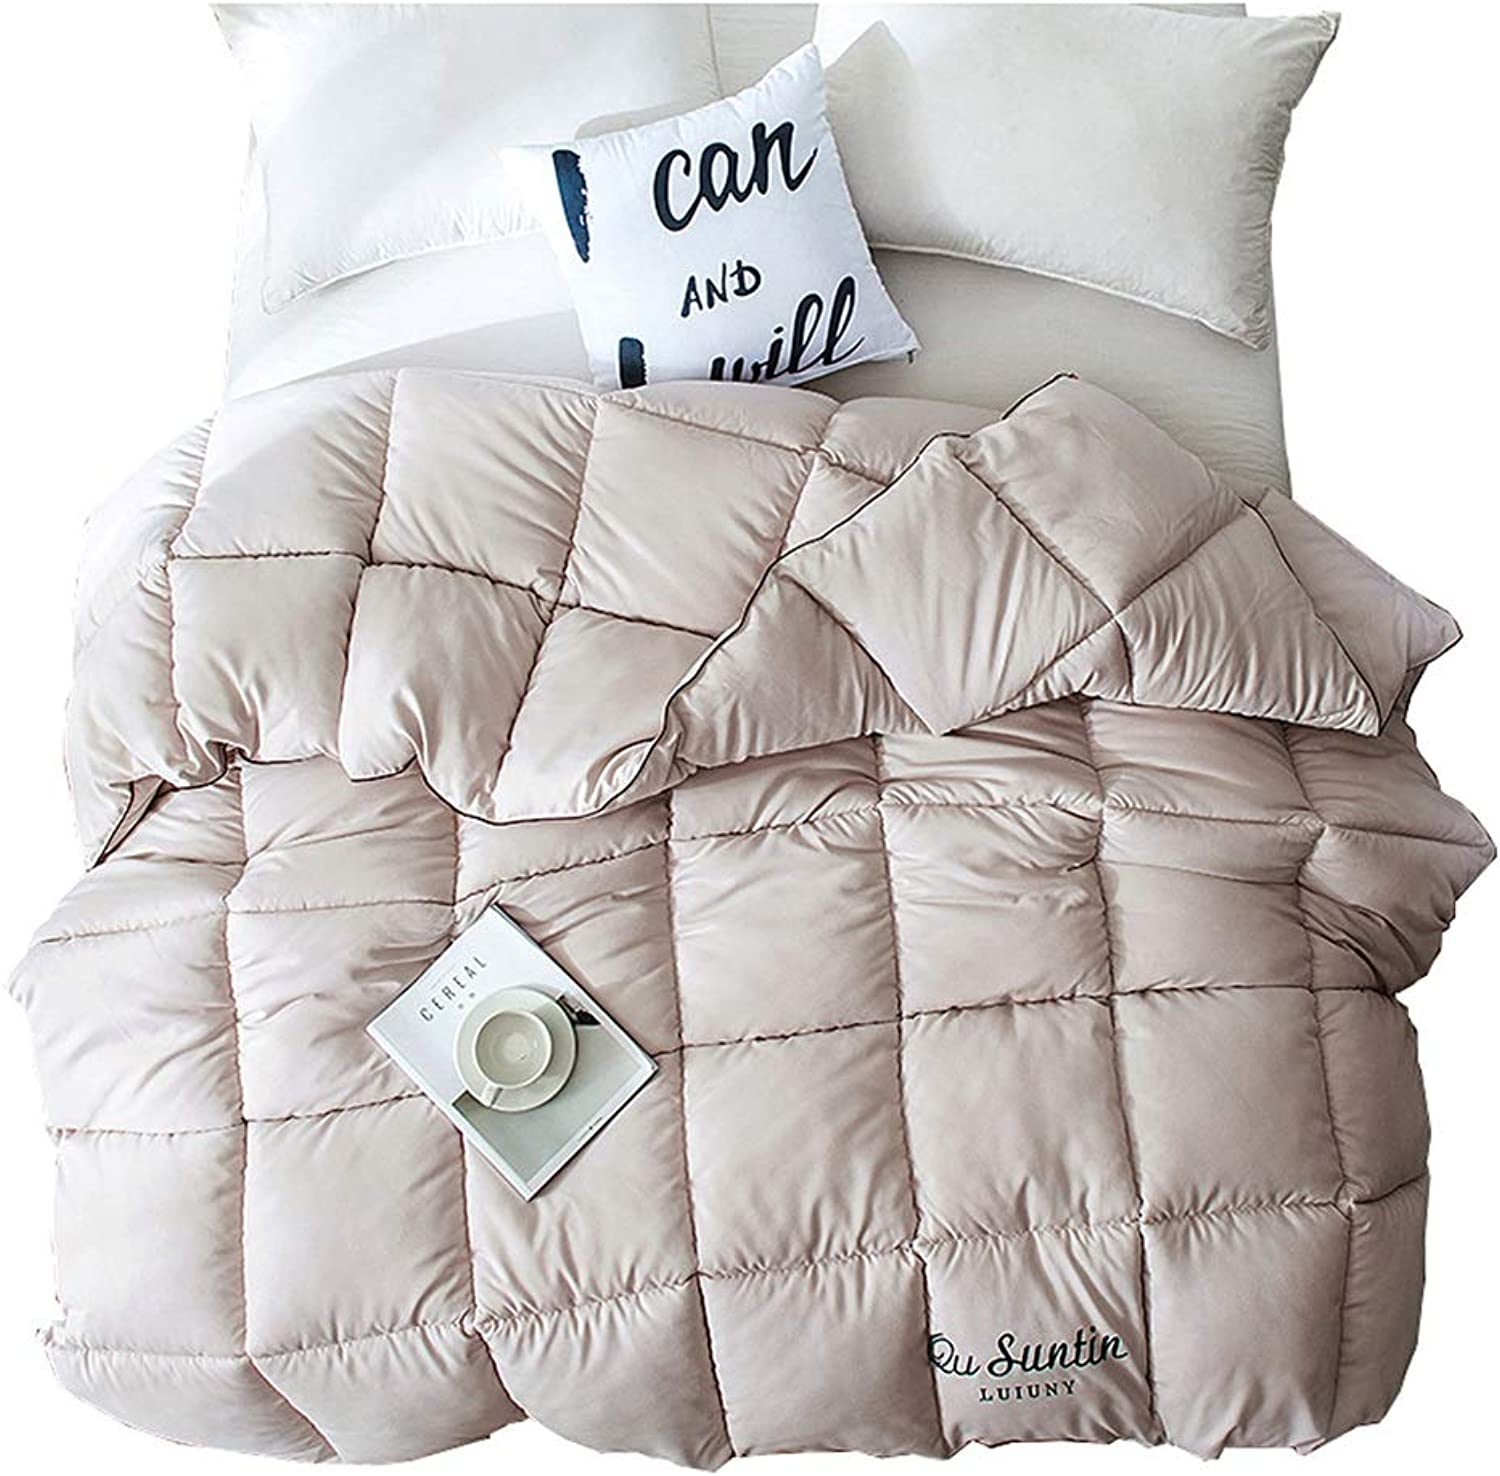 Quilt Thicken Warm and Soft for All Season All-Season Quilted Comforte Rhypoallergenic 100% Cotton Fabrics Quilted Comforter with Corner Tabs (Size   150CMx200CM2.5kg)